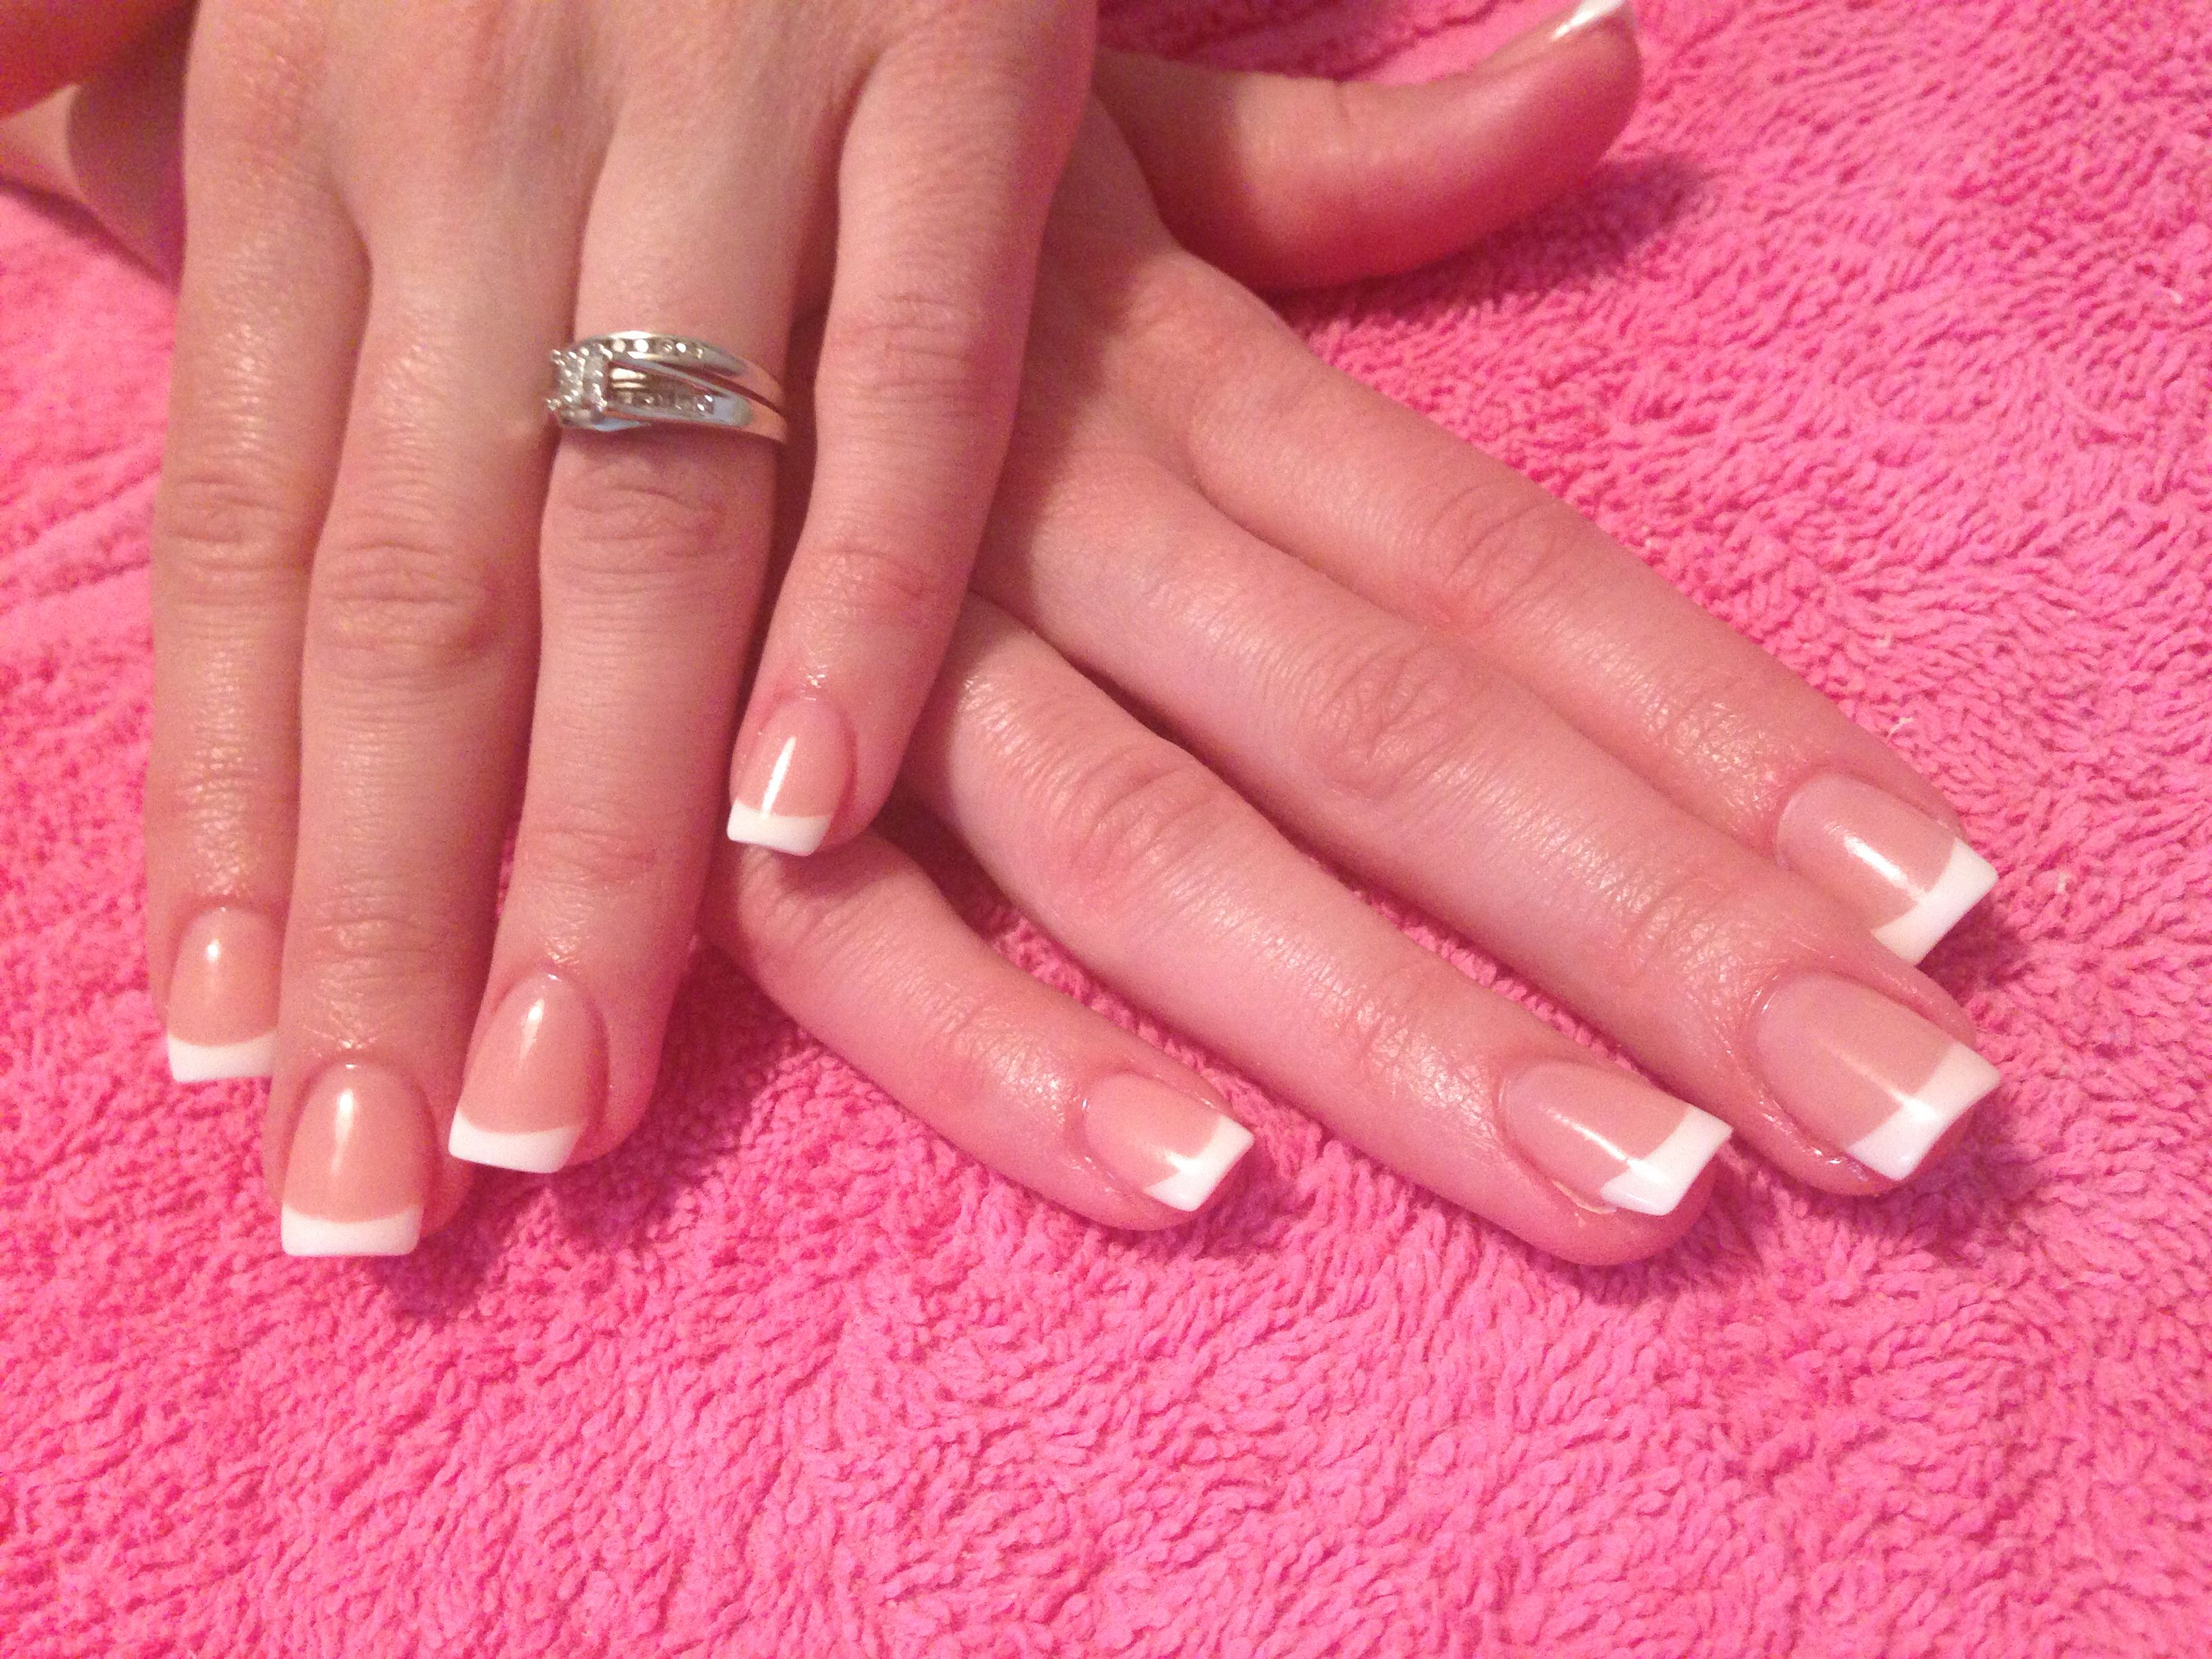 Classic French - Acrylic Nails. Like this, but slightly more rounded ...